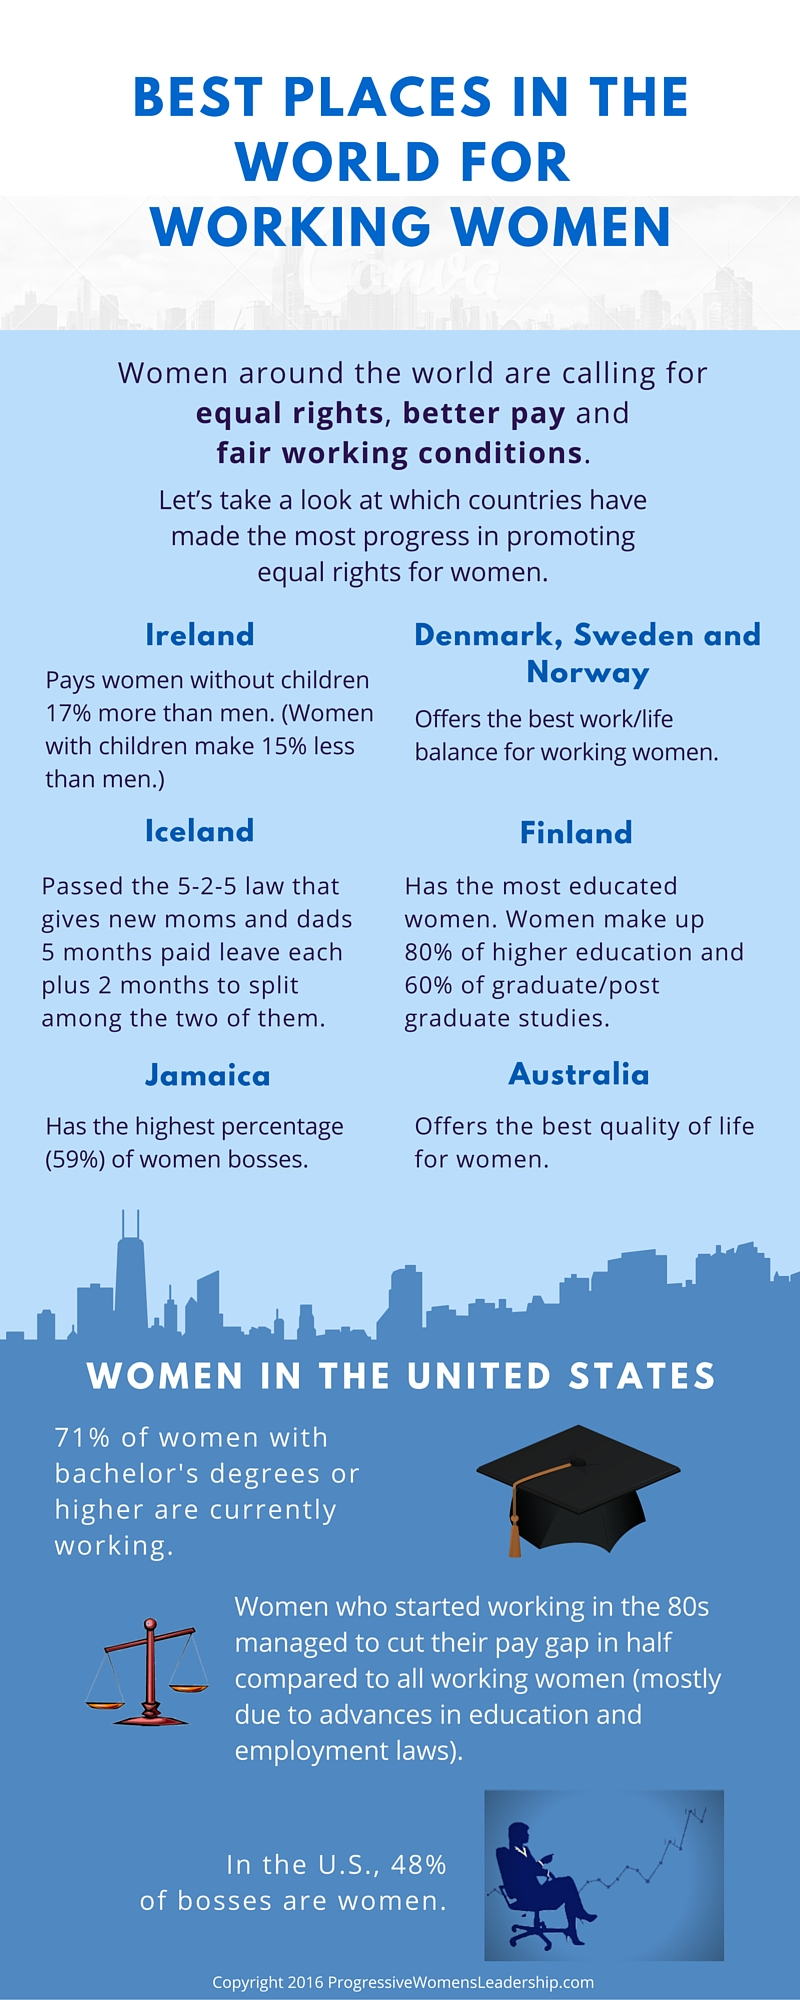 Best places in the world for women to live and work